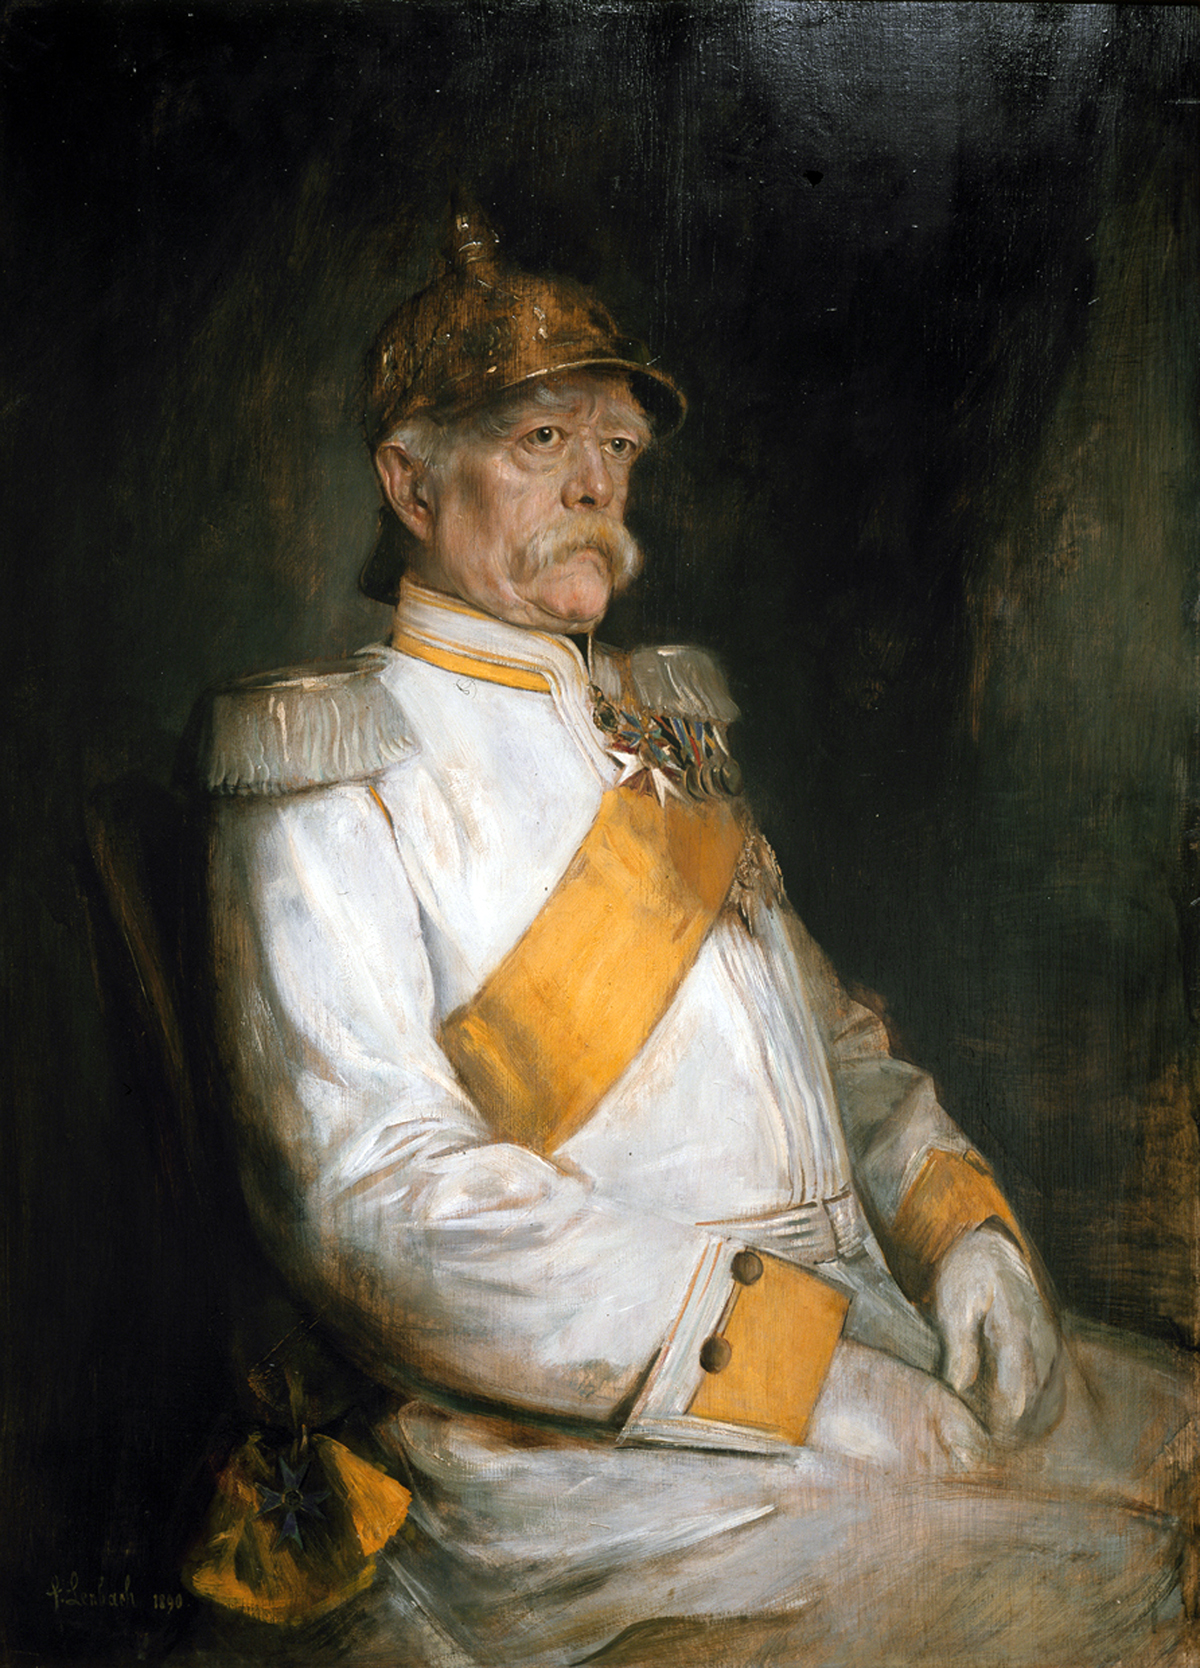 https://upload.wikimedia.org/wikipedia/commons/7/7c/Franz_von_Lenbach_-_Portrait_of_Otto_Eduard_Leopold_von_Bismarck_-_Walters_371007_-_View_B.jpg